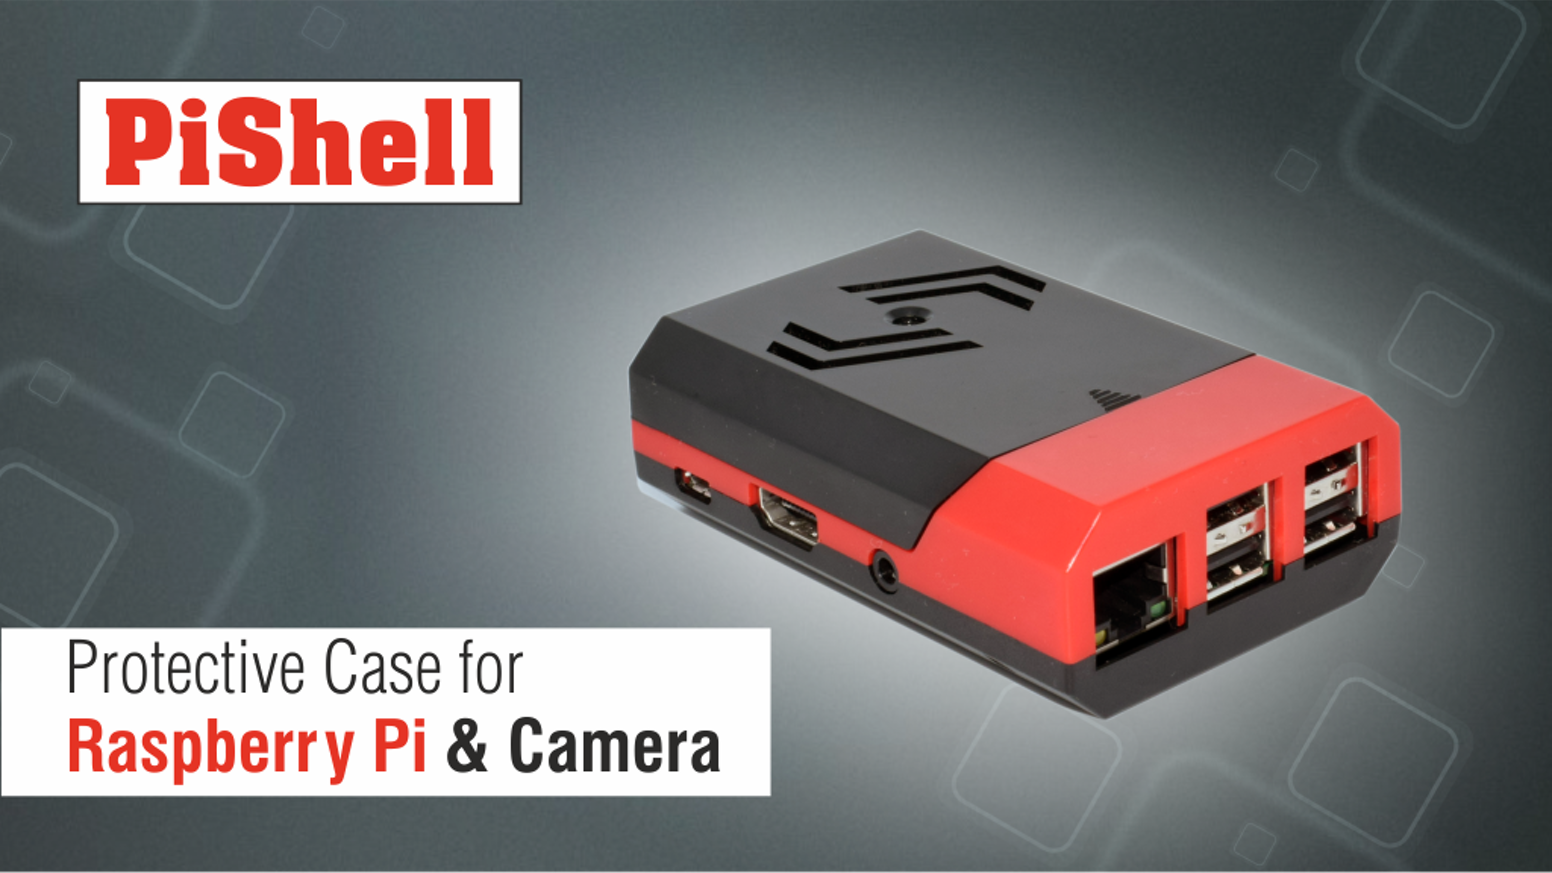 Protective Case for your Raspberry Pi and Camera